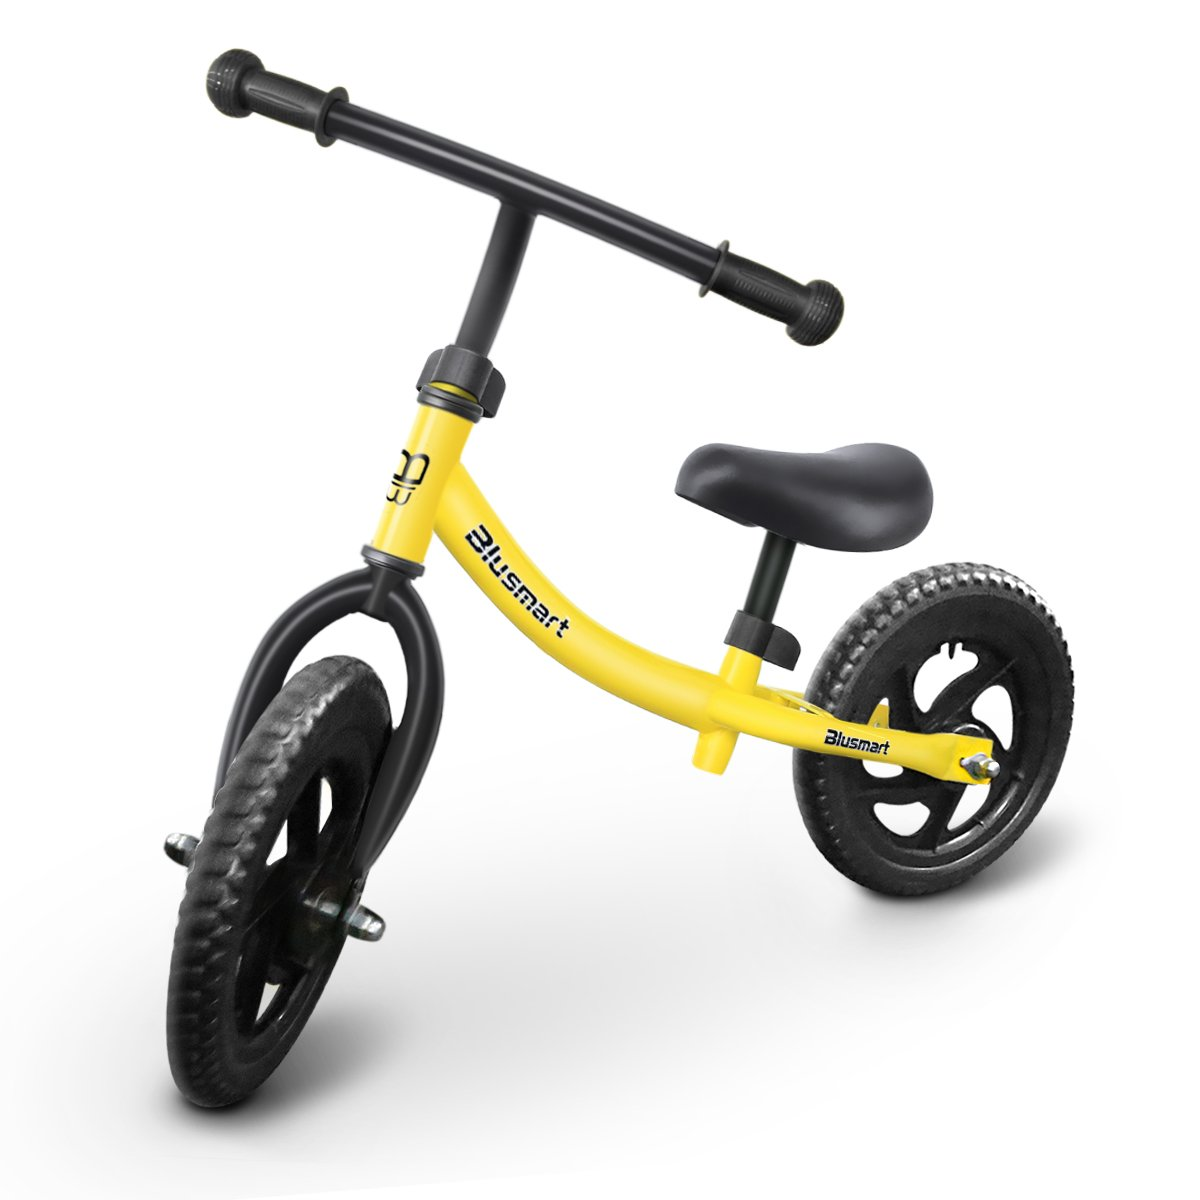 Blusmart Children Balance Bike Sport Walking Bicycle for Kids Ages 18 Months to 5 Years Old 12 inch Lightweight Bikes for Boys and Girls Balance Training